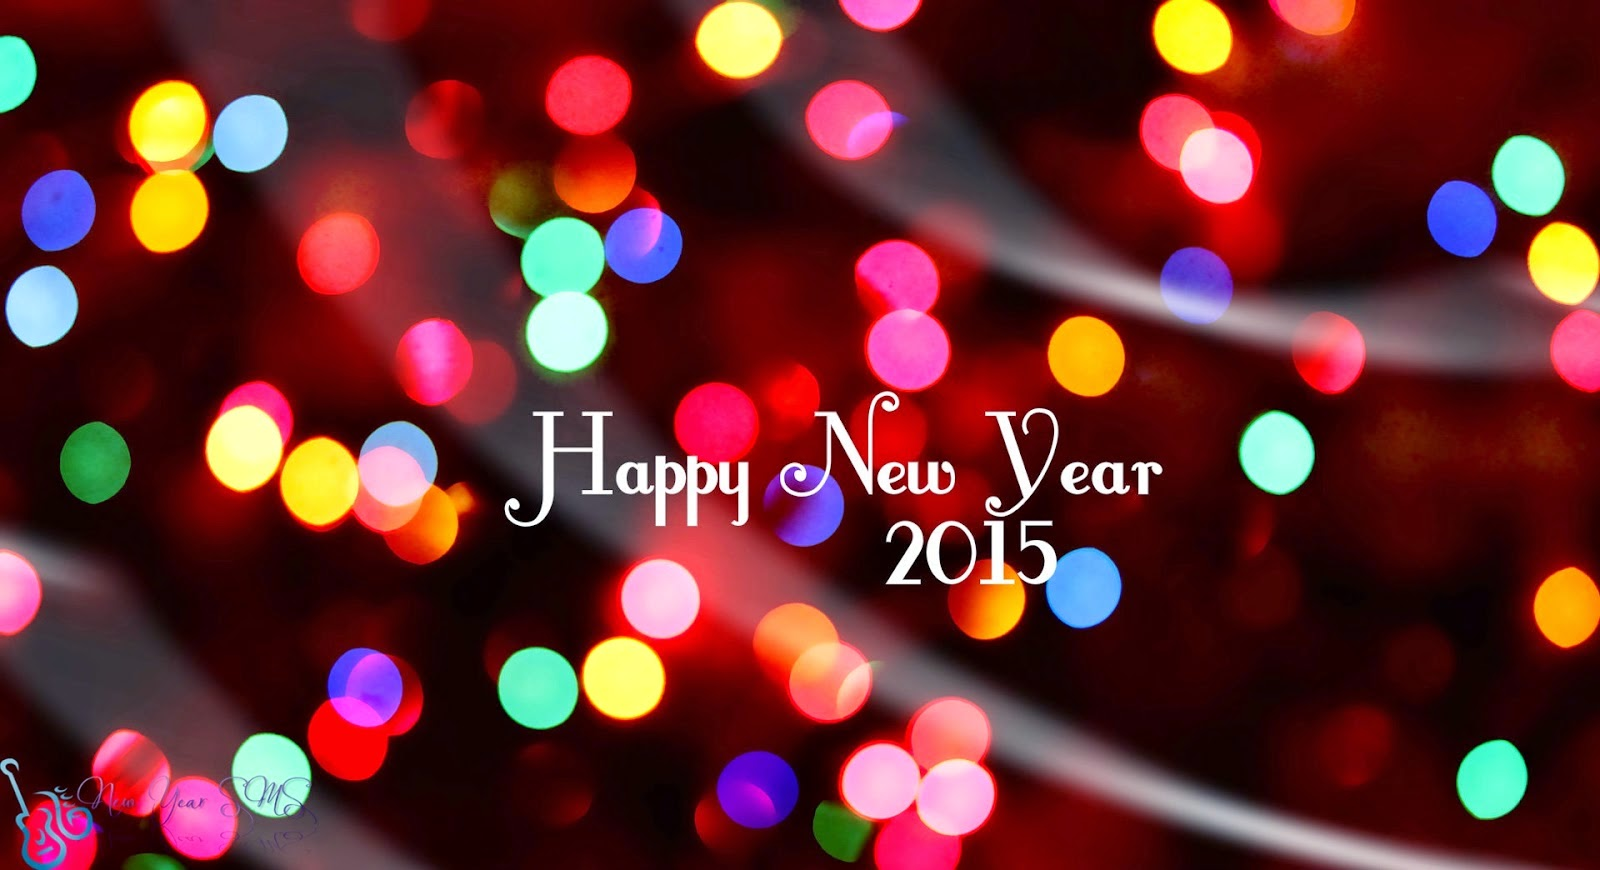 69 Wallpapers For Happy New Year 2015 On Wallpapersafari